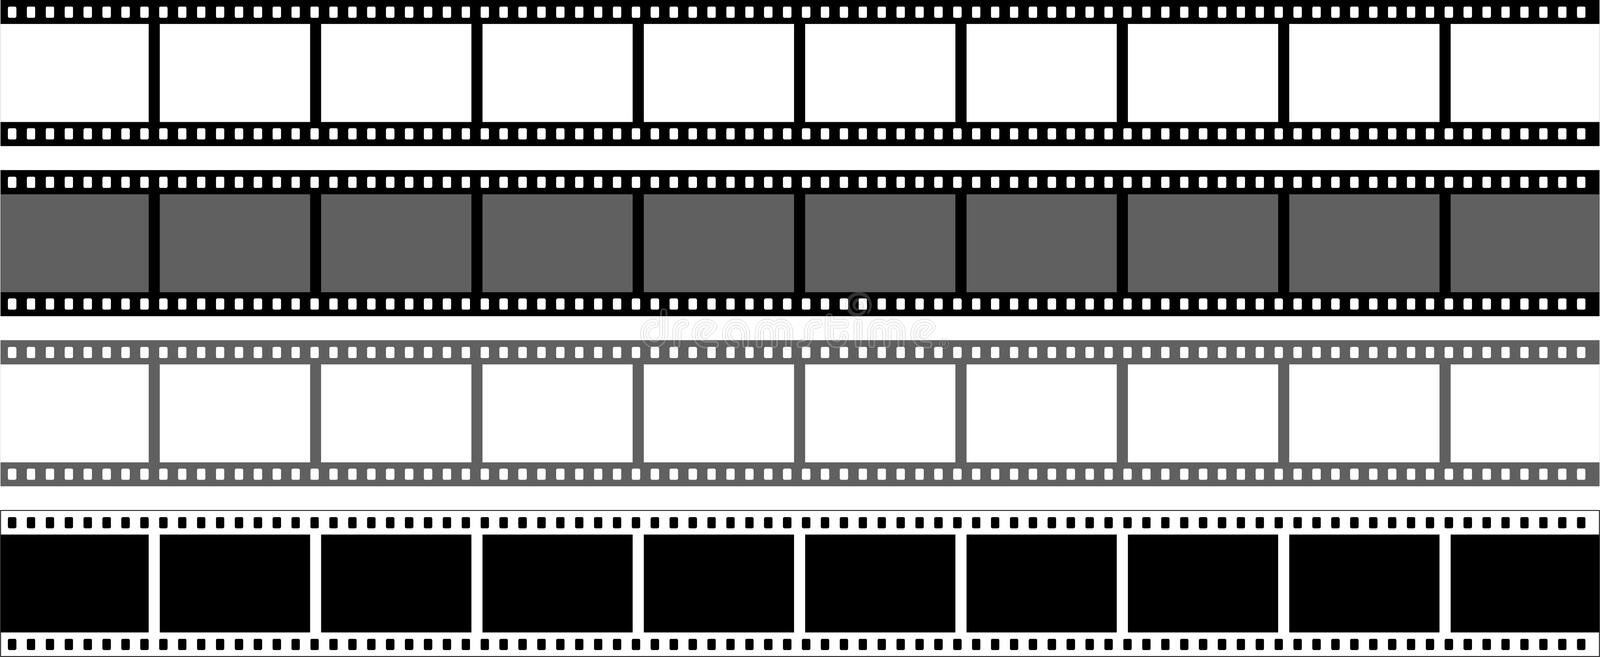 film strip on white background stock vector illustration of artistic clip 117192841 film strip on white background stock